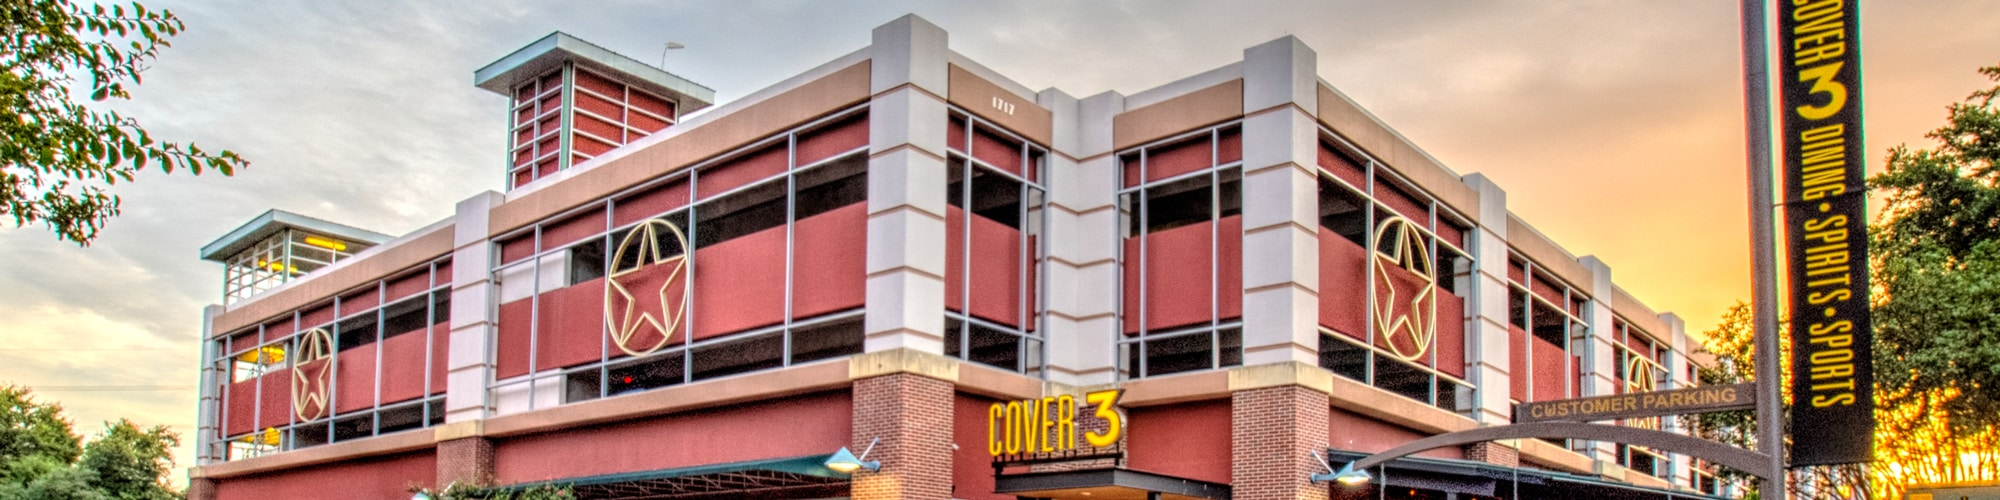 Hartland Plaza Shops Parking Garage | 1717 W. 6th Street in Austin, Texas